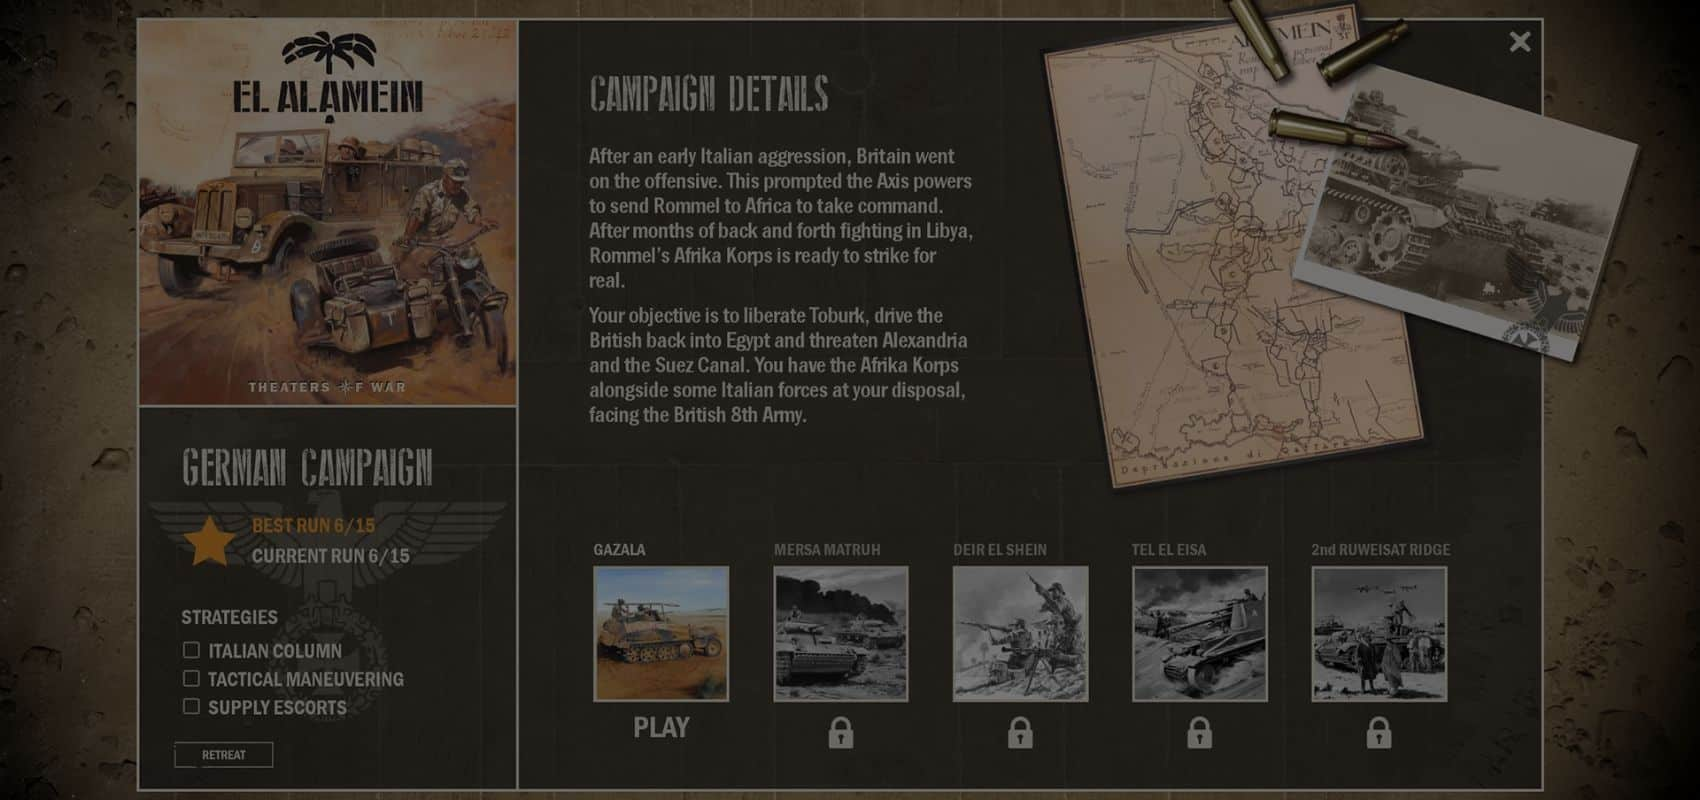 KARDS single-player Theaters of War expansion launches its assault